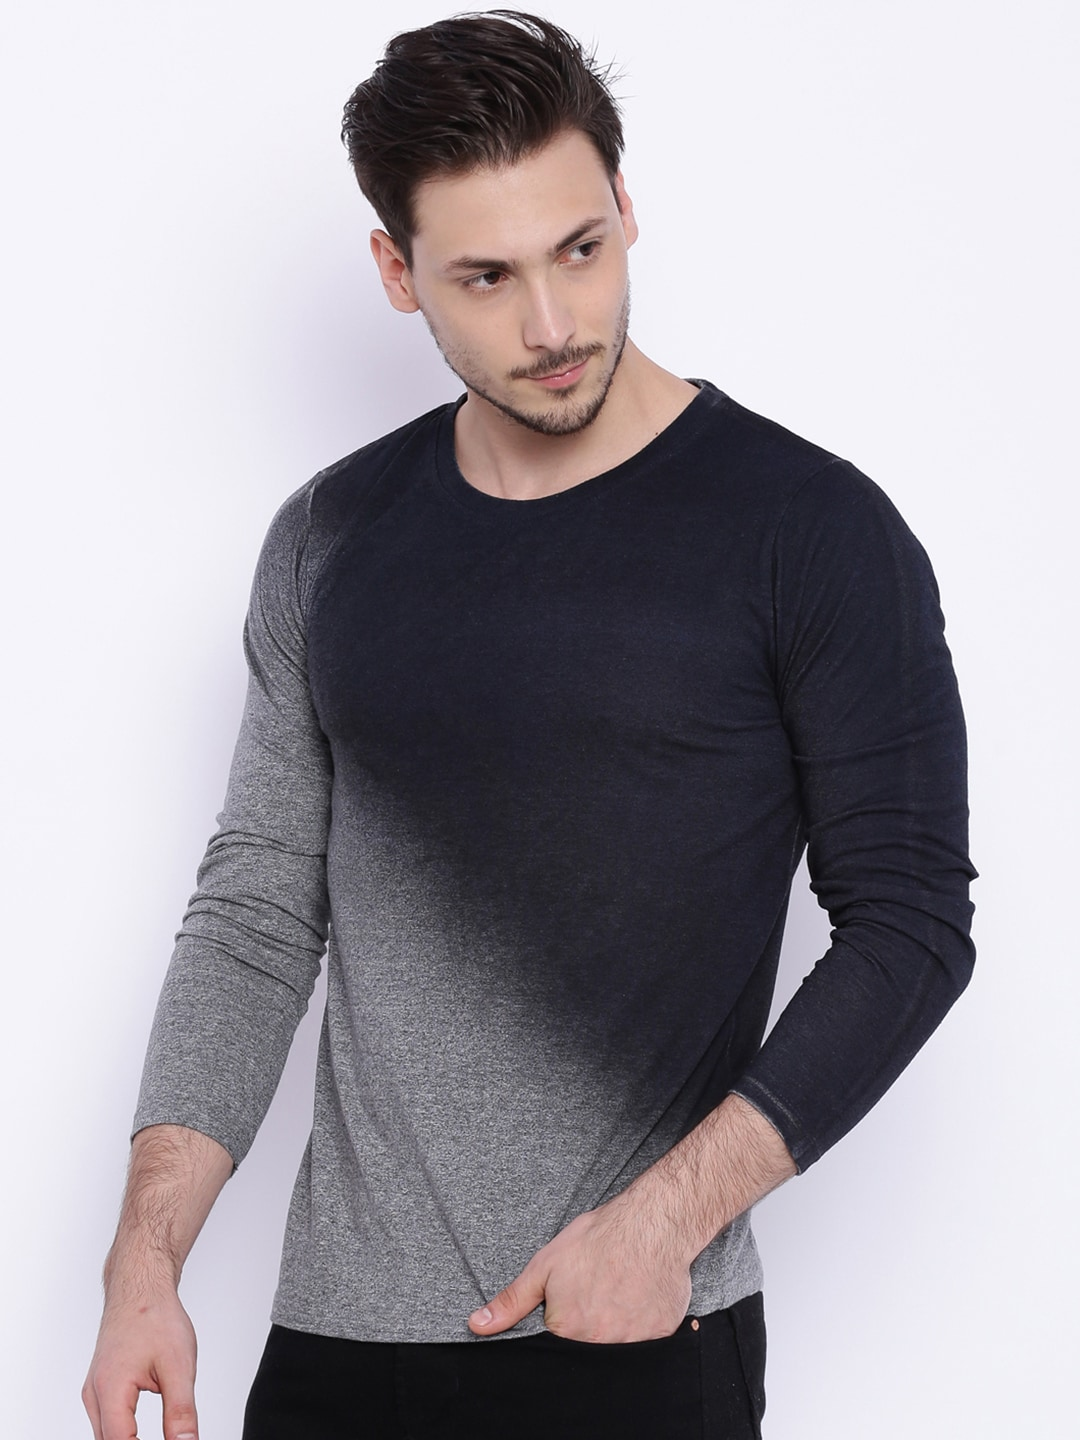 Long Sleeve T Shirts For Men Online Artee Shirt